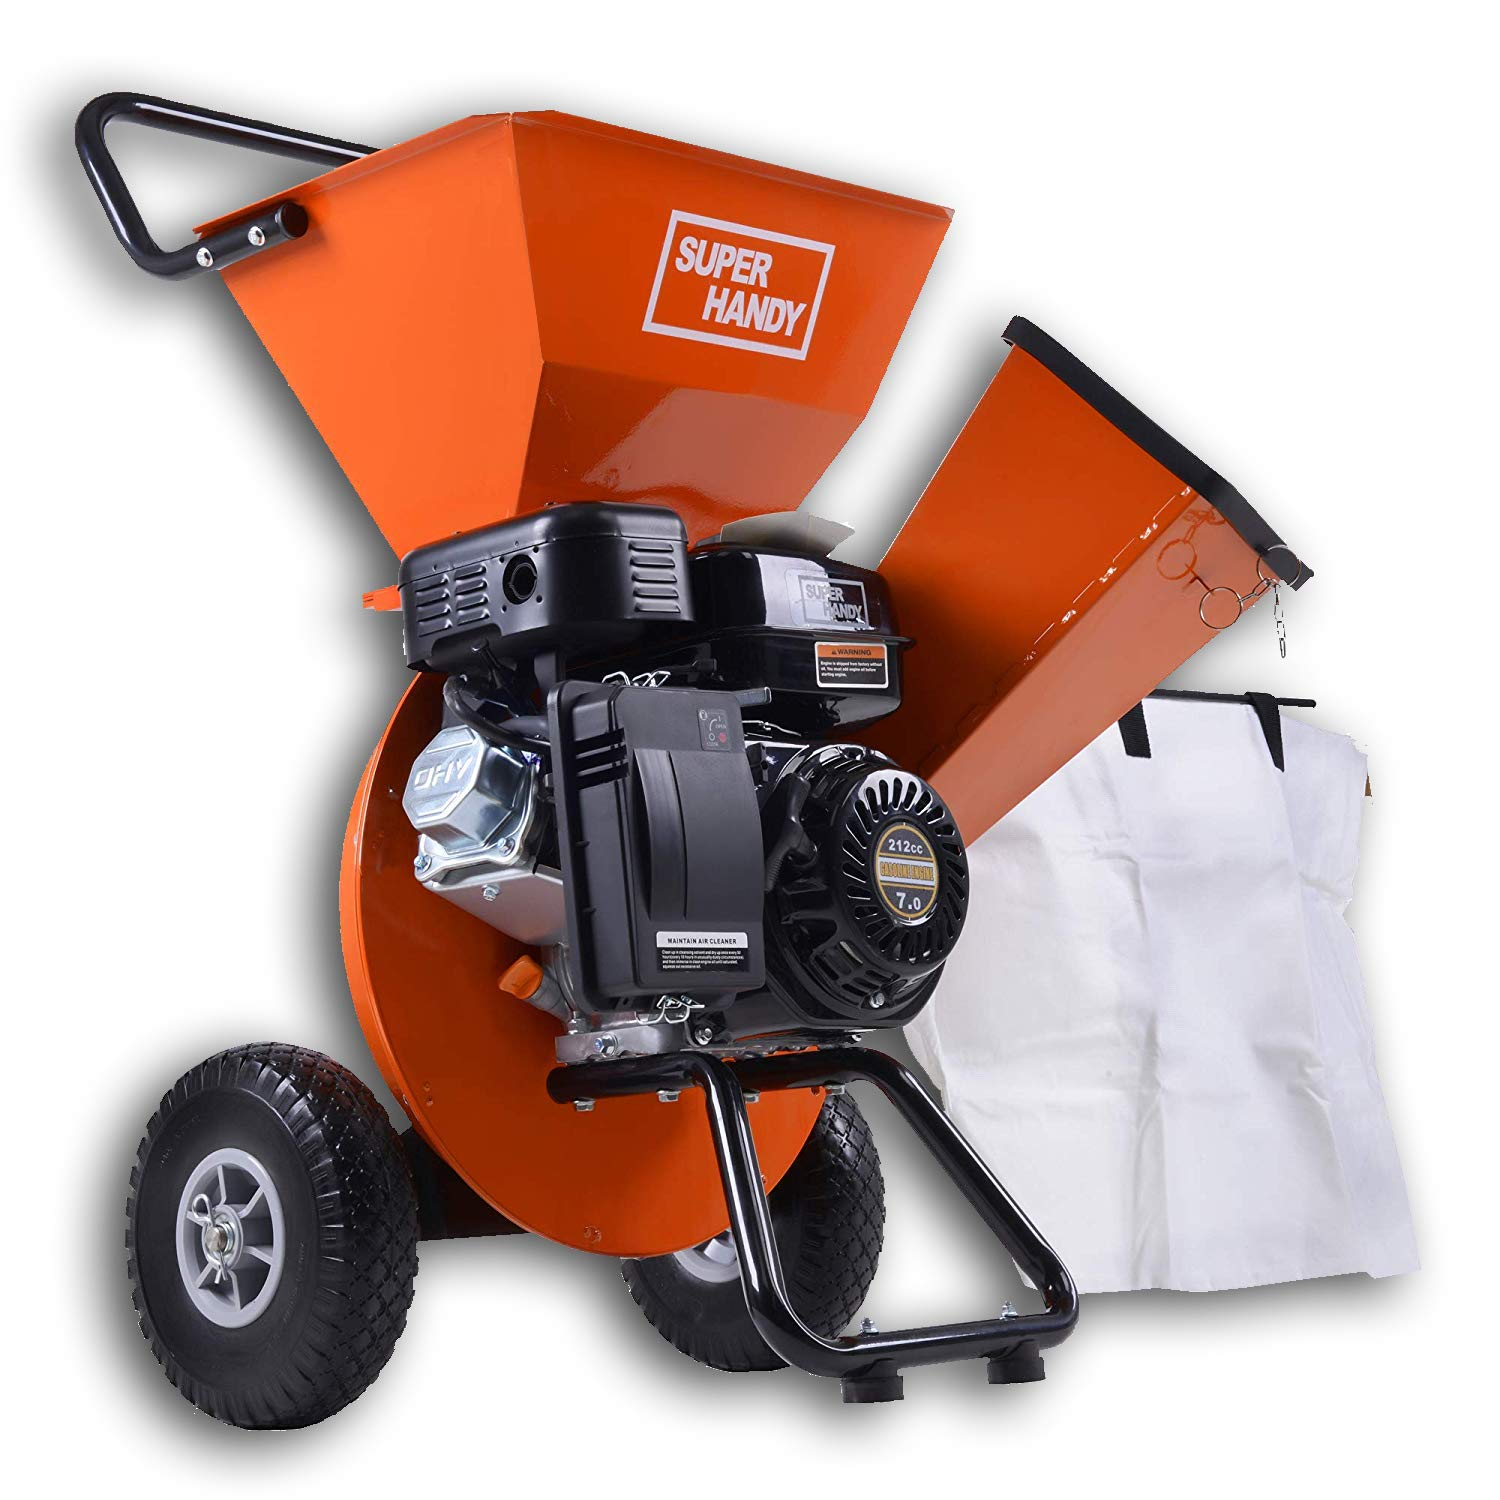 SuperHandy Wood Chipper Shredder Mulcher 7HP Gas Powered Max 3'' Chipping Capacity Ultra Heavy Duty 3 in 1 Multi-Function Capable (Amazon Exclusive only for USA) by SuperHandy